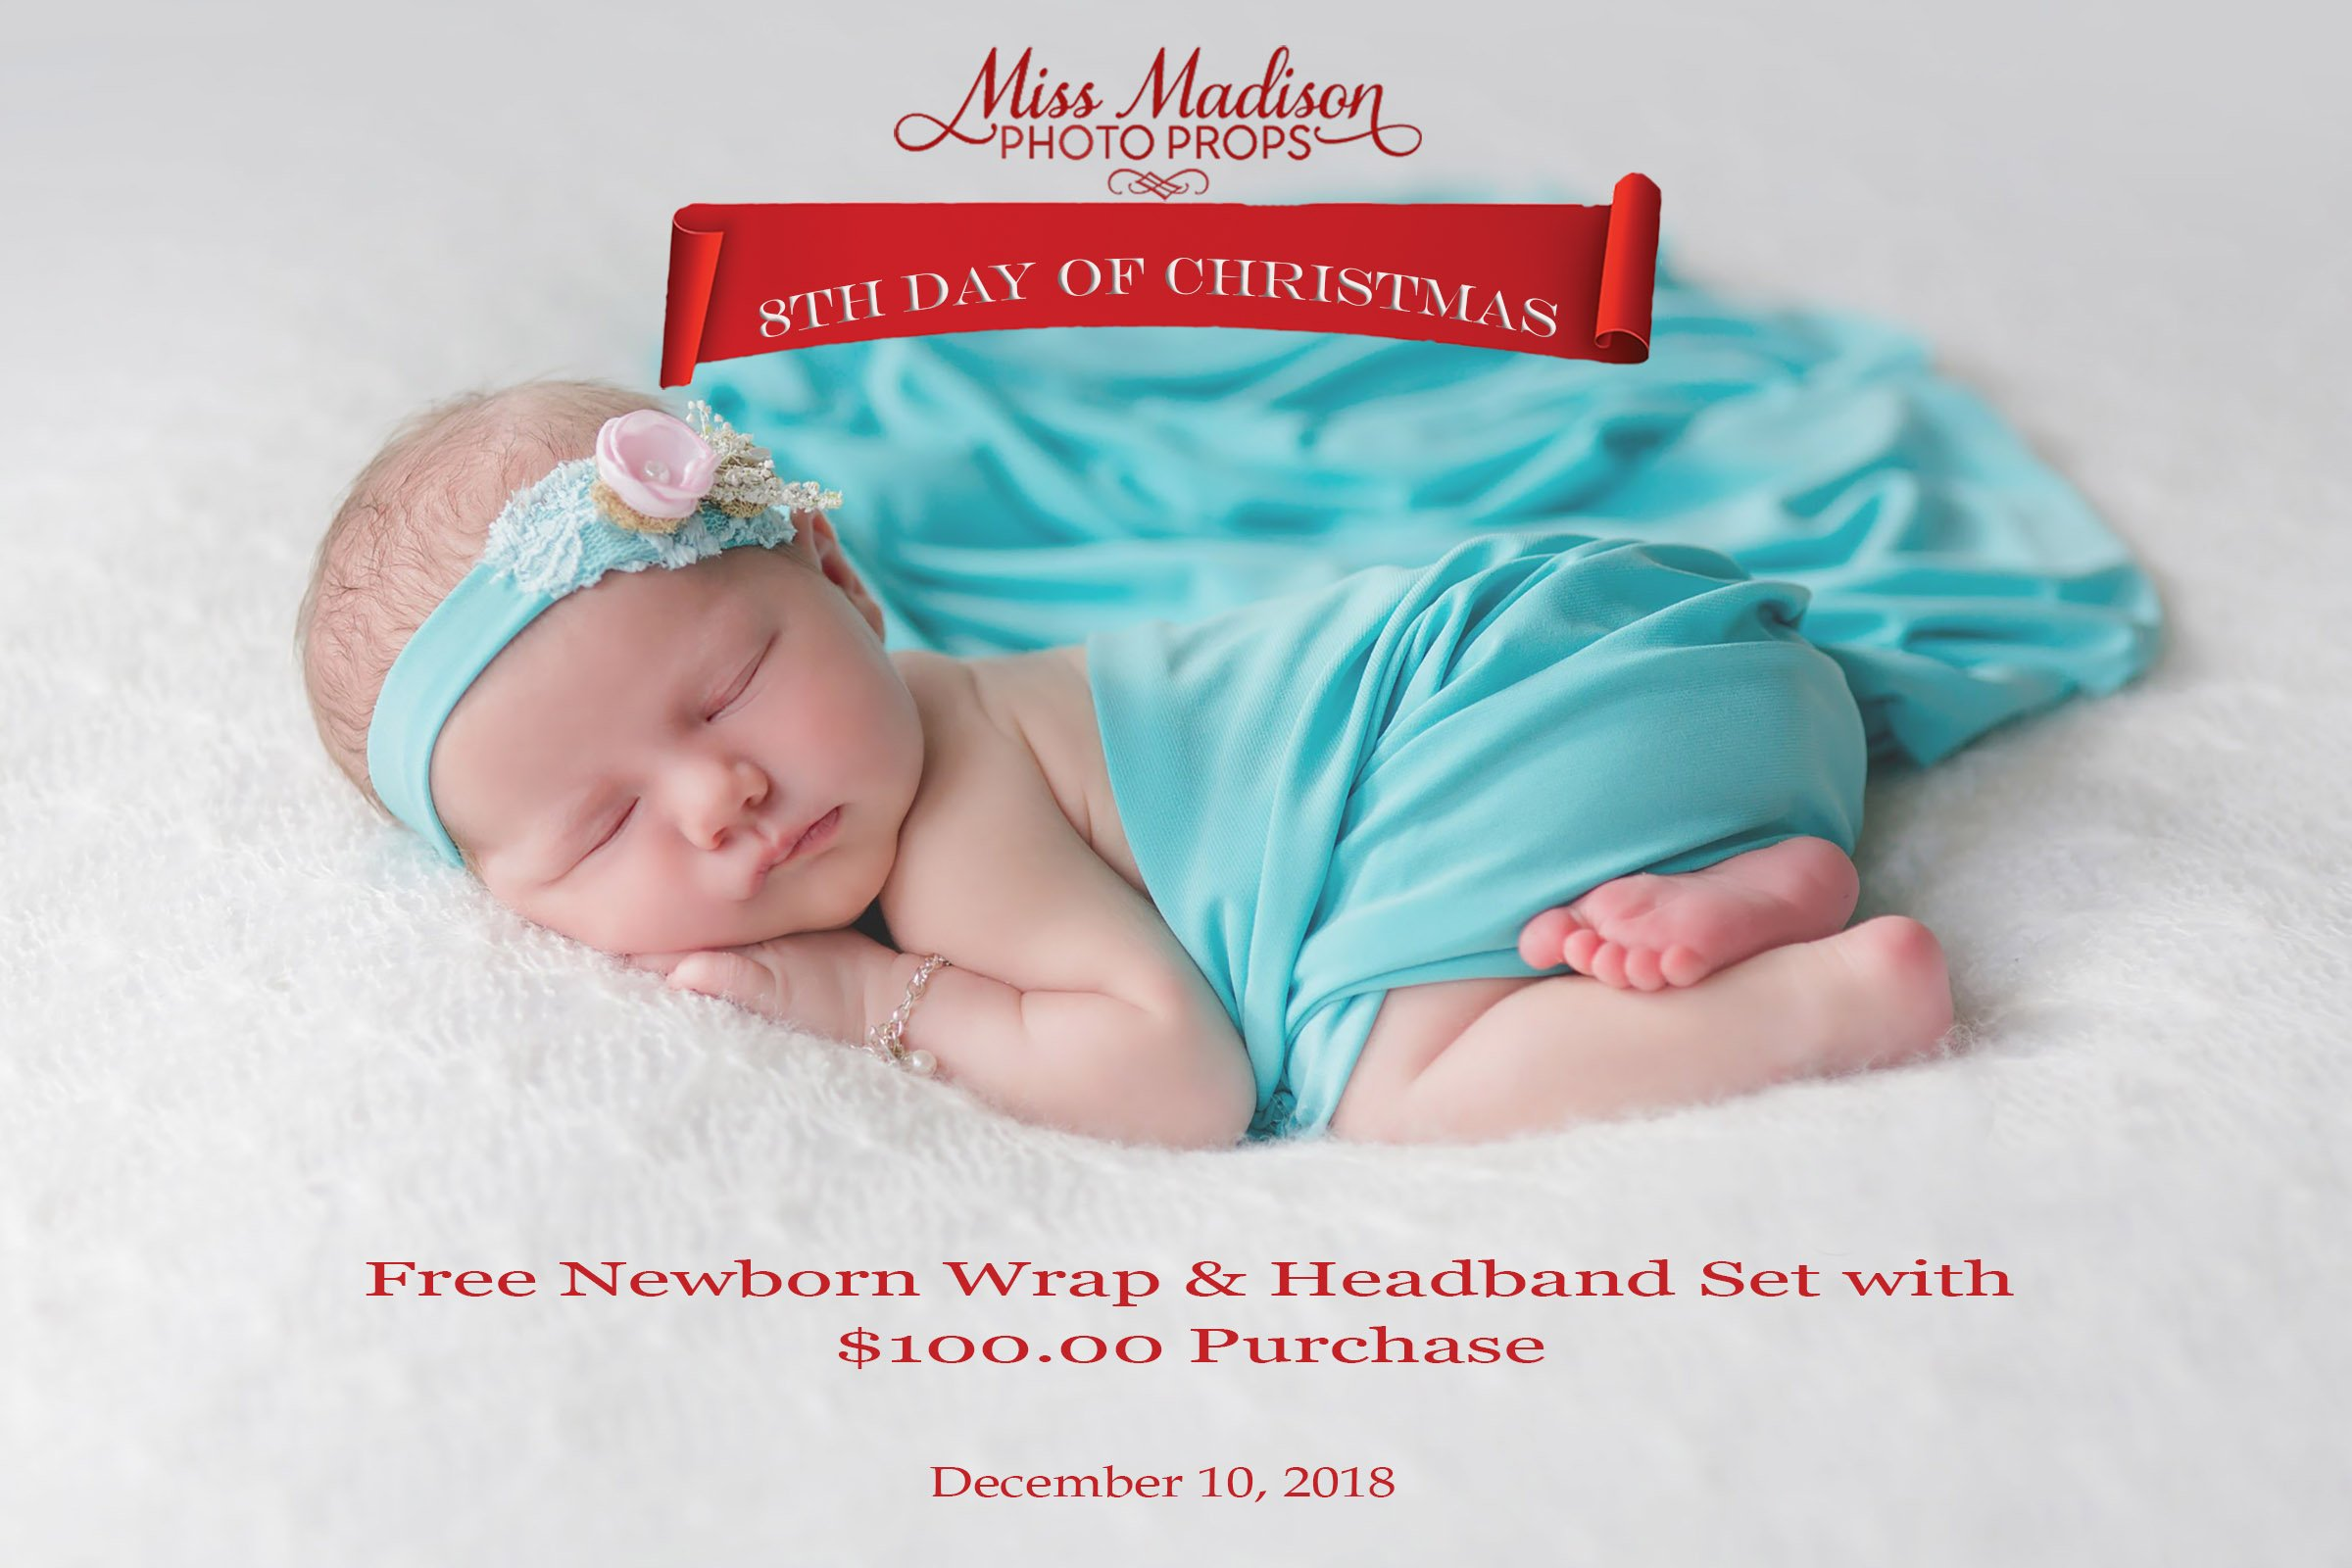 newborn wrap and headband, maternity gown photography, maternity dress photo shoot, newborn photography prop